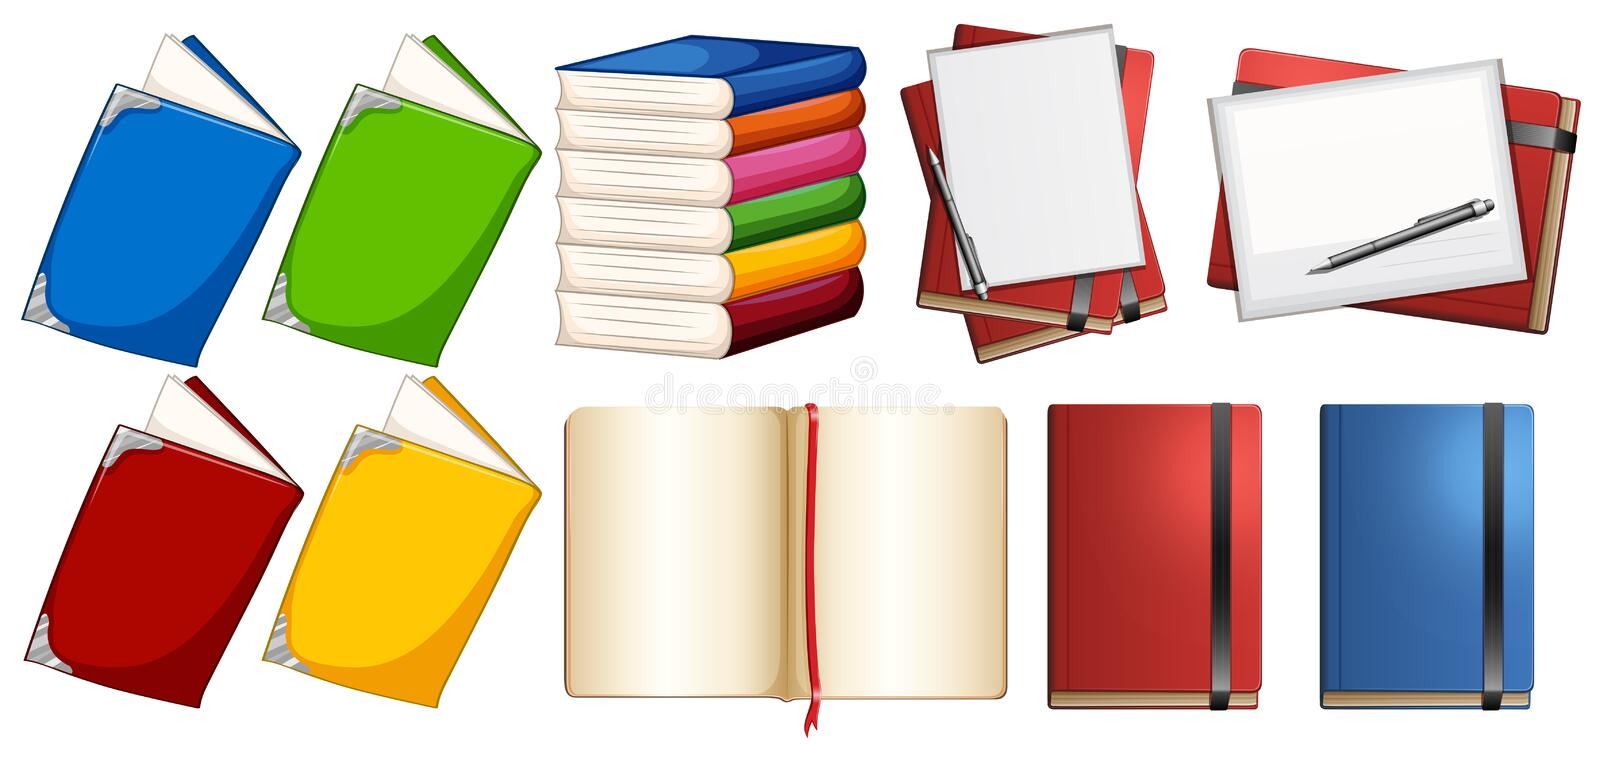 Books with different color covers stock illustration